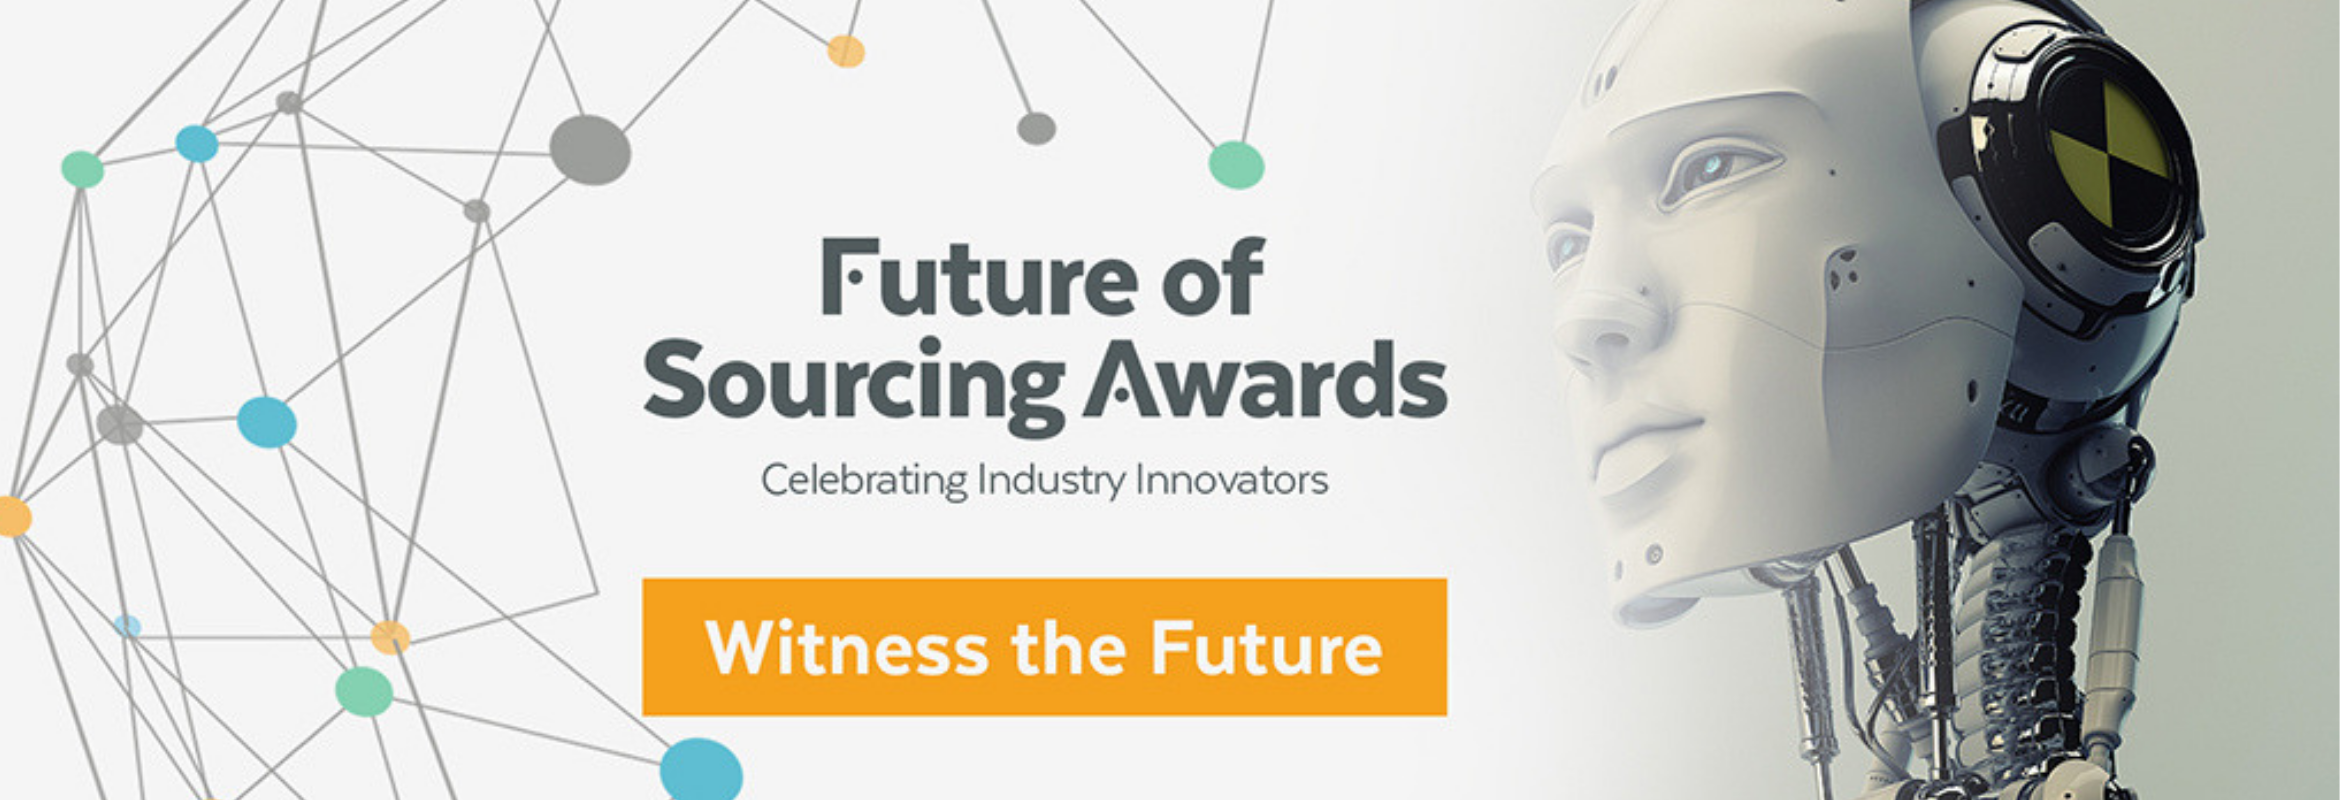 Future of Sourcing Awards Finalists Announced